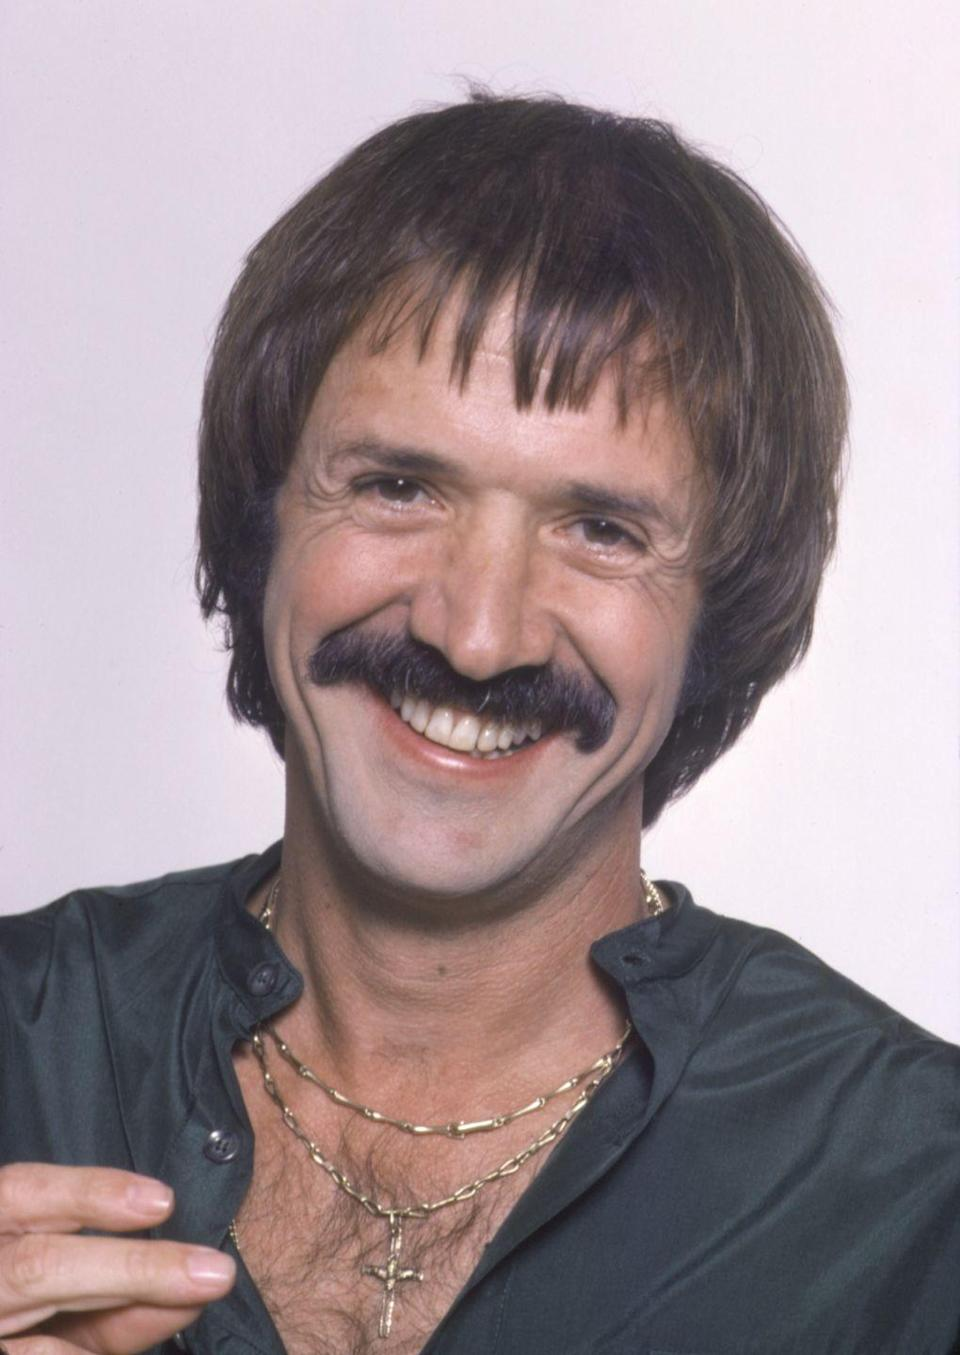 """<p>Sonny Bono, a.k.a. Cher's former husband and performing partner, was inspired to get into politics after encountering some """"governmental red-tape"""" involving his home and Italian restaurant, <a href=""""http://content.time.com/time/specials/packages/article/0,28804,1854887_1854886_1854879,00.html"""" rel=""""nofollow noopener"""" target=""""_blank"""" data-ylk=""""slk:reported"""" class=""""link rapid-noclick-resp"""">reported </a><em><a href=""""http://content.time.com/time/specials/packages/article/0,28804,1854887_1854886_1854879,00.html"""" rel=""""nofollow noopener"""" target=""""_blank"""" data-ylk=""""slk:TIME"""" class=""""link rapid-noclick-resp"""">TIME</a>.</em> In 1988, Bono became the mayor of Palm Springs and in 1994 he went on to serve in Congress. </p>"""